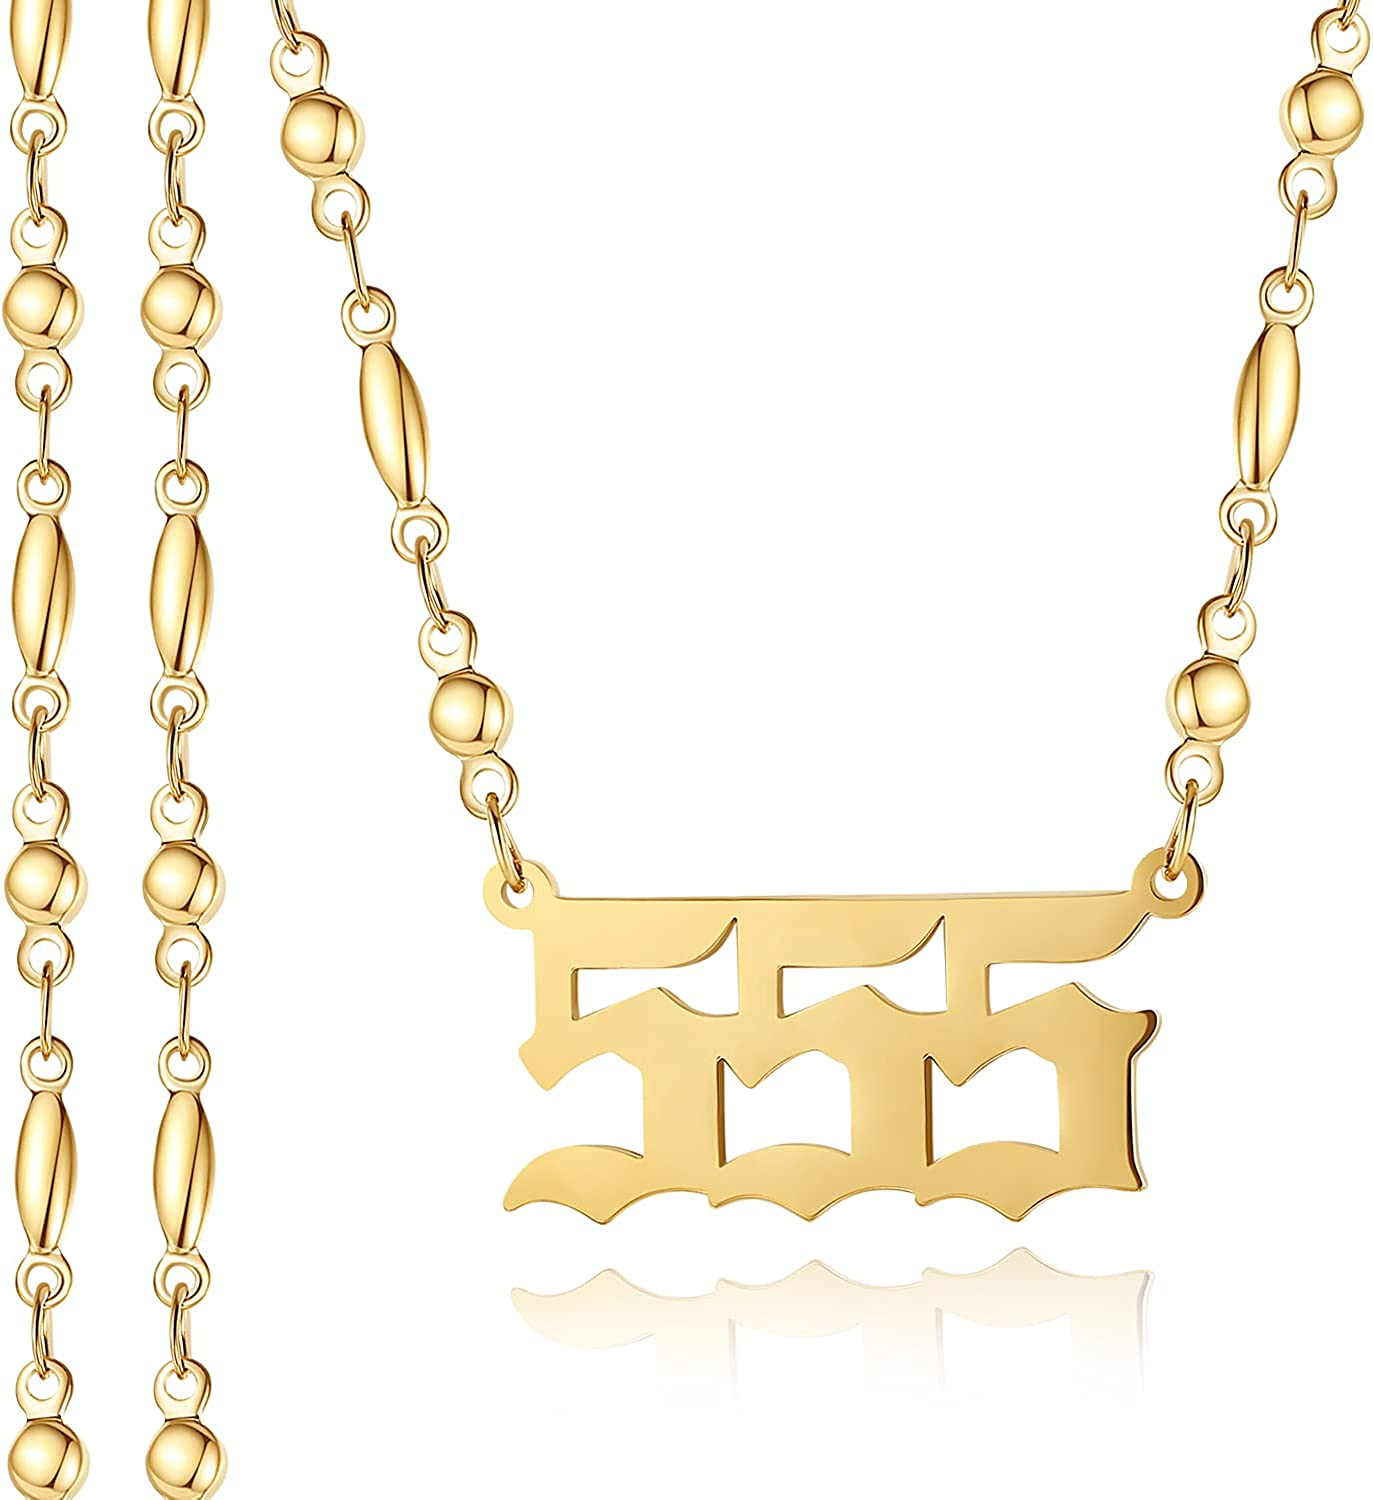 SAM & LORI Angel Number Necklace 000 111 222 333 444 555 666 777 888 999 1010 1111 Dainty 18K Gold Plated Devil Necklace Pendants Choker Chain Numerology Jewelry Gift for Women Teen Girls Kids